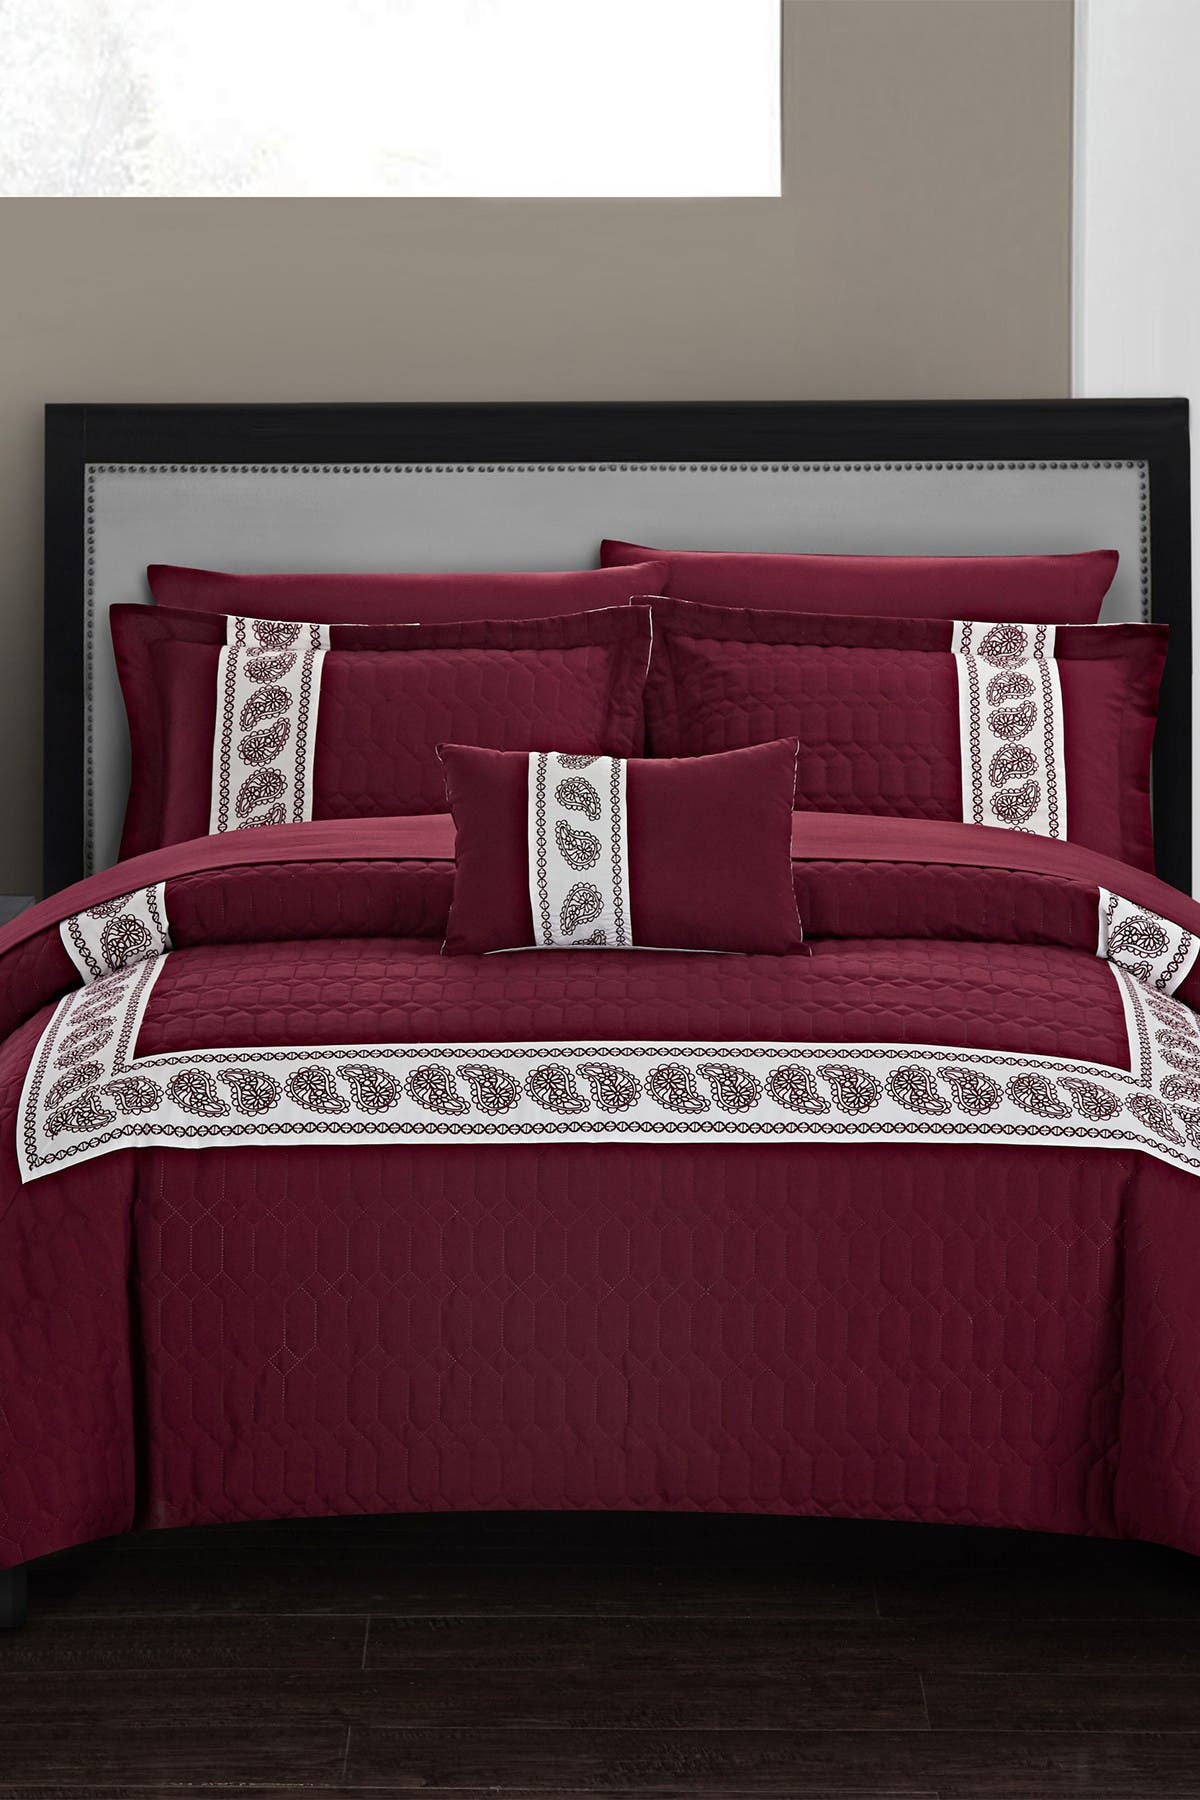 Image of Chic Home Bedding Queen Keegan Hexagon Embossed Hotel Collection Bed in a Bag - Burgundy